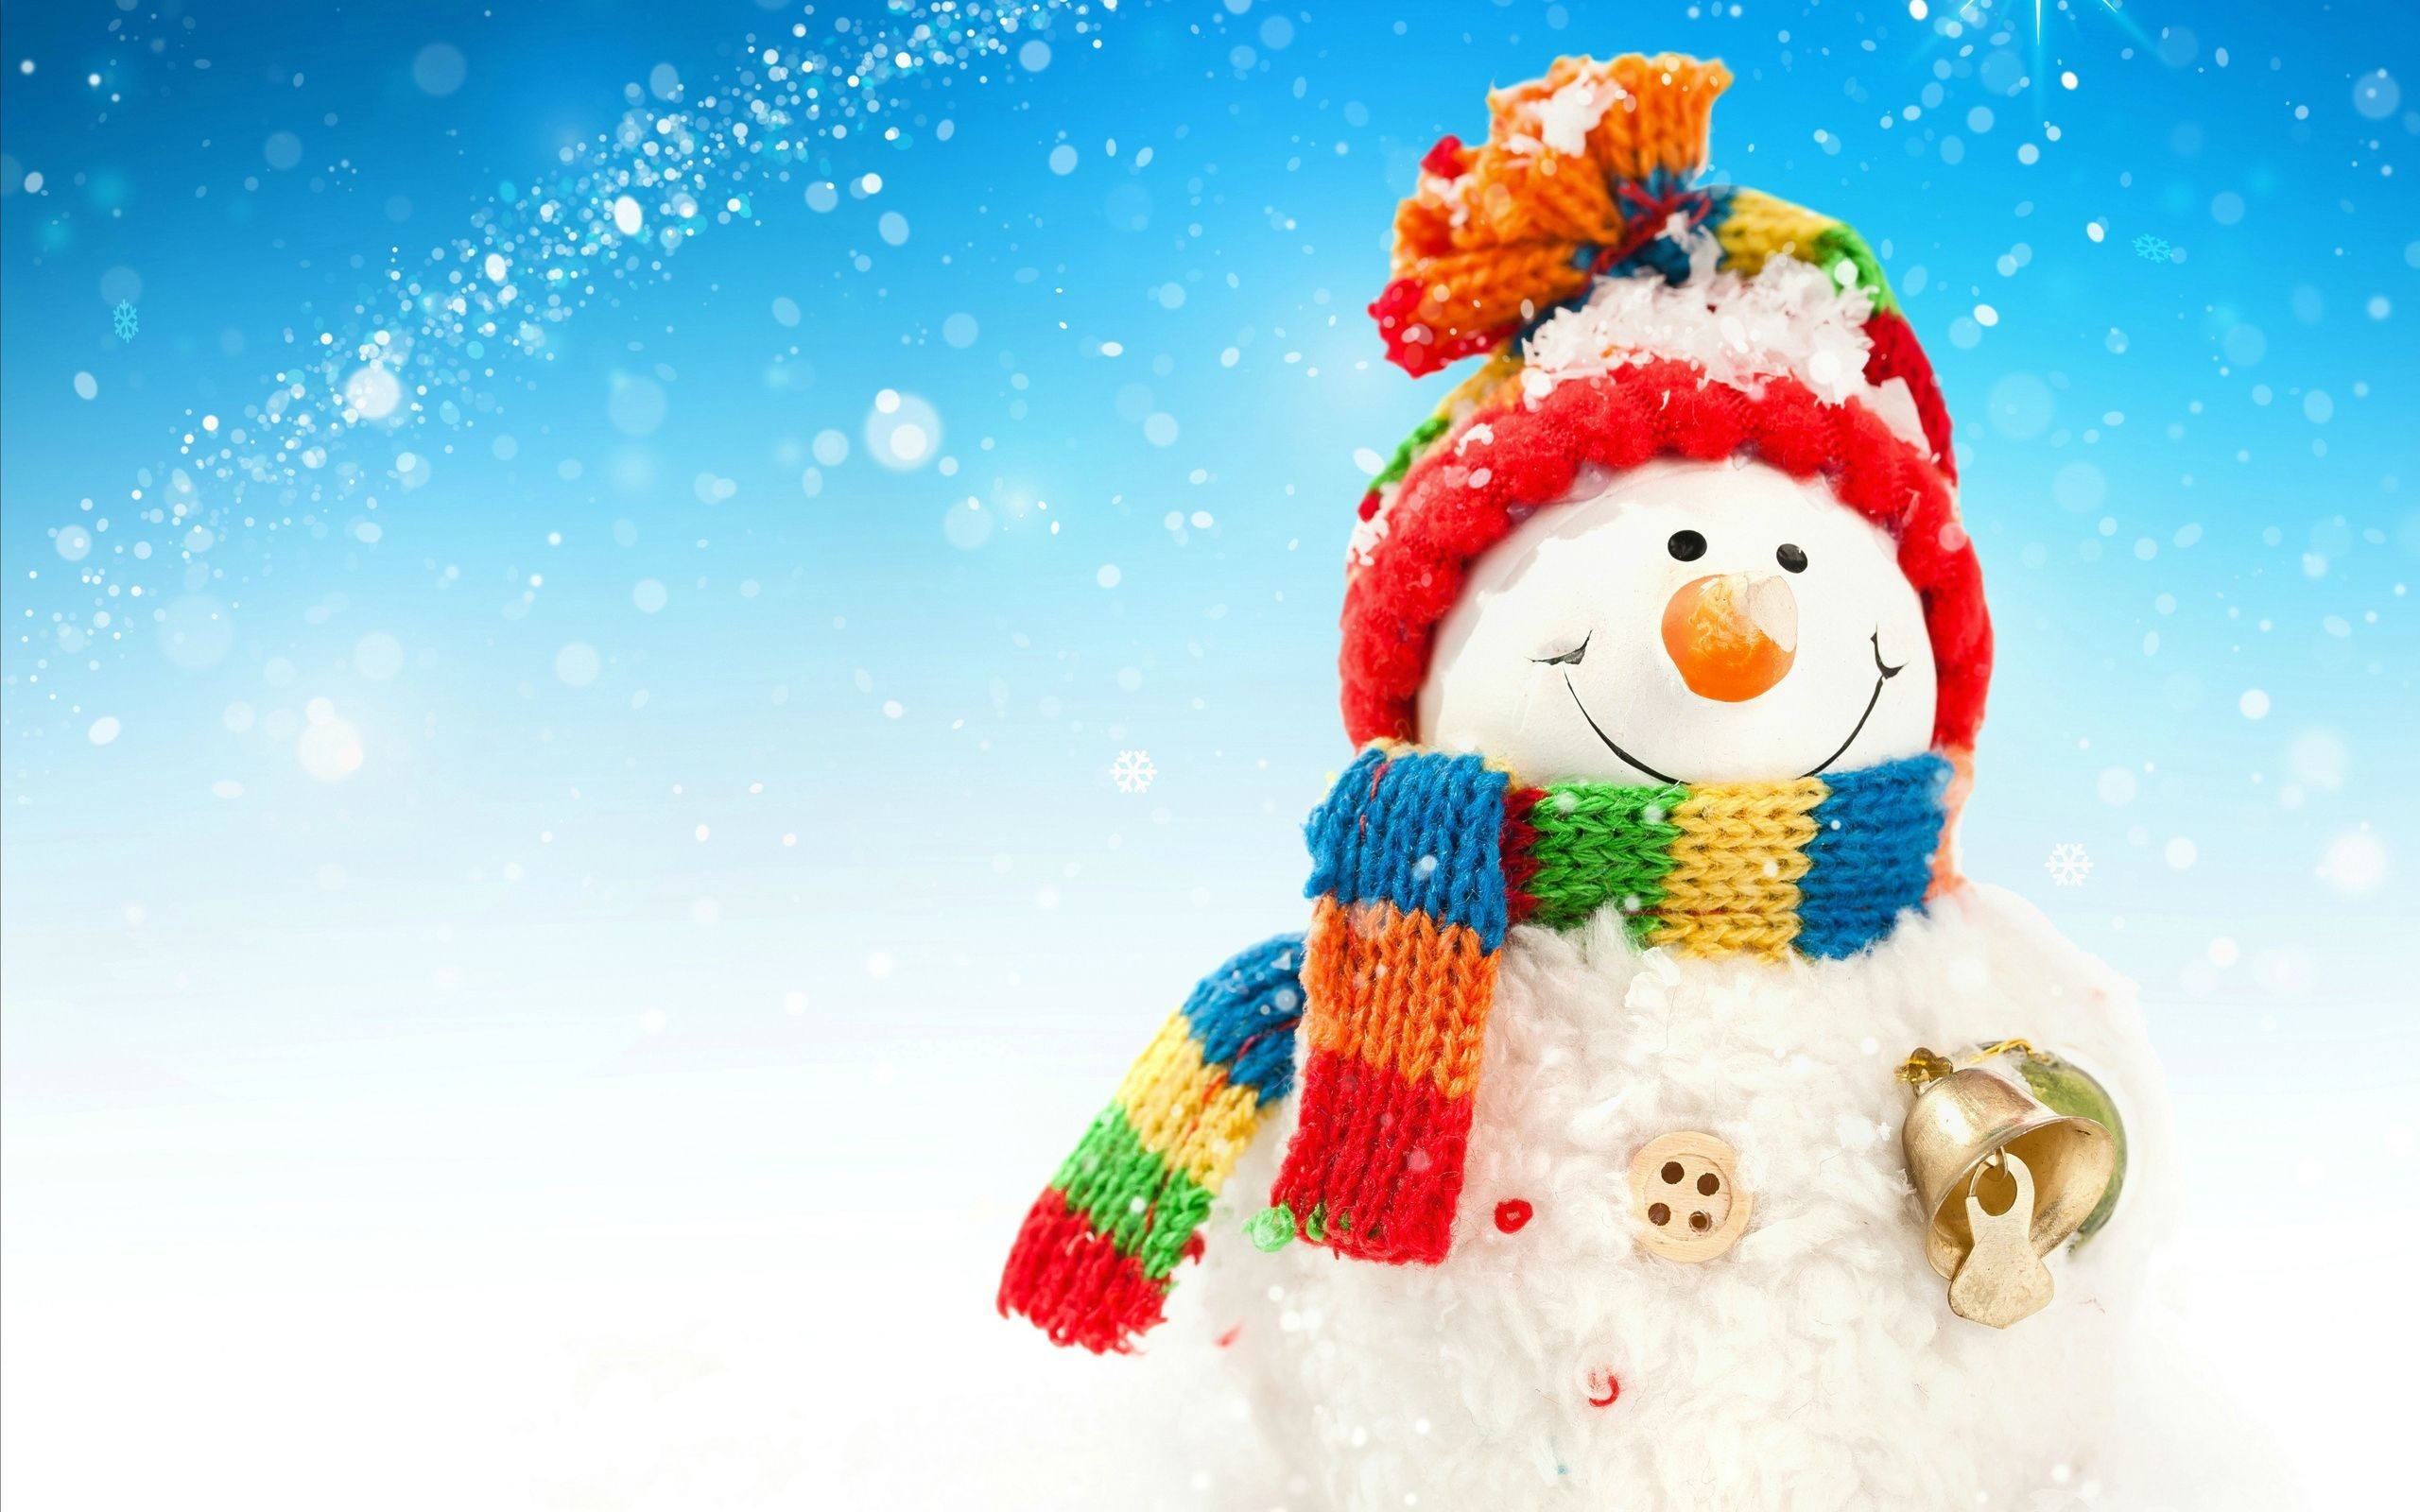 2560x1600 Snowman Wallpaper Background 17496